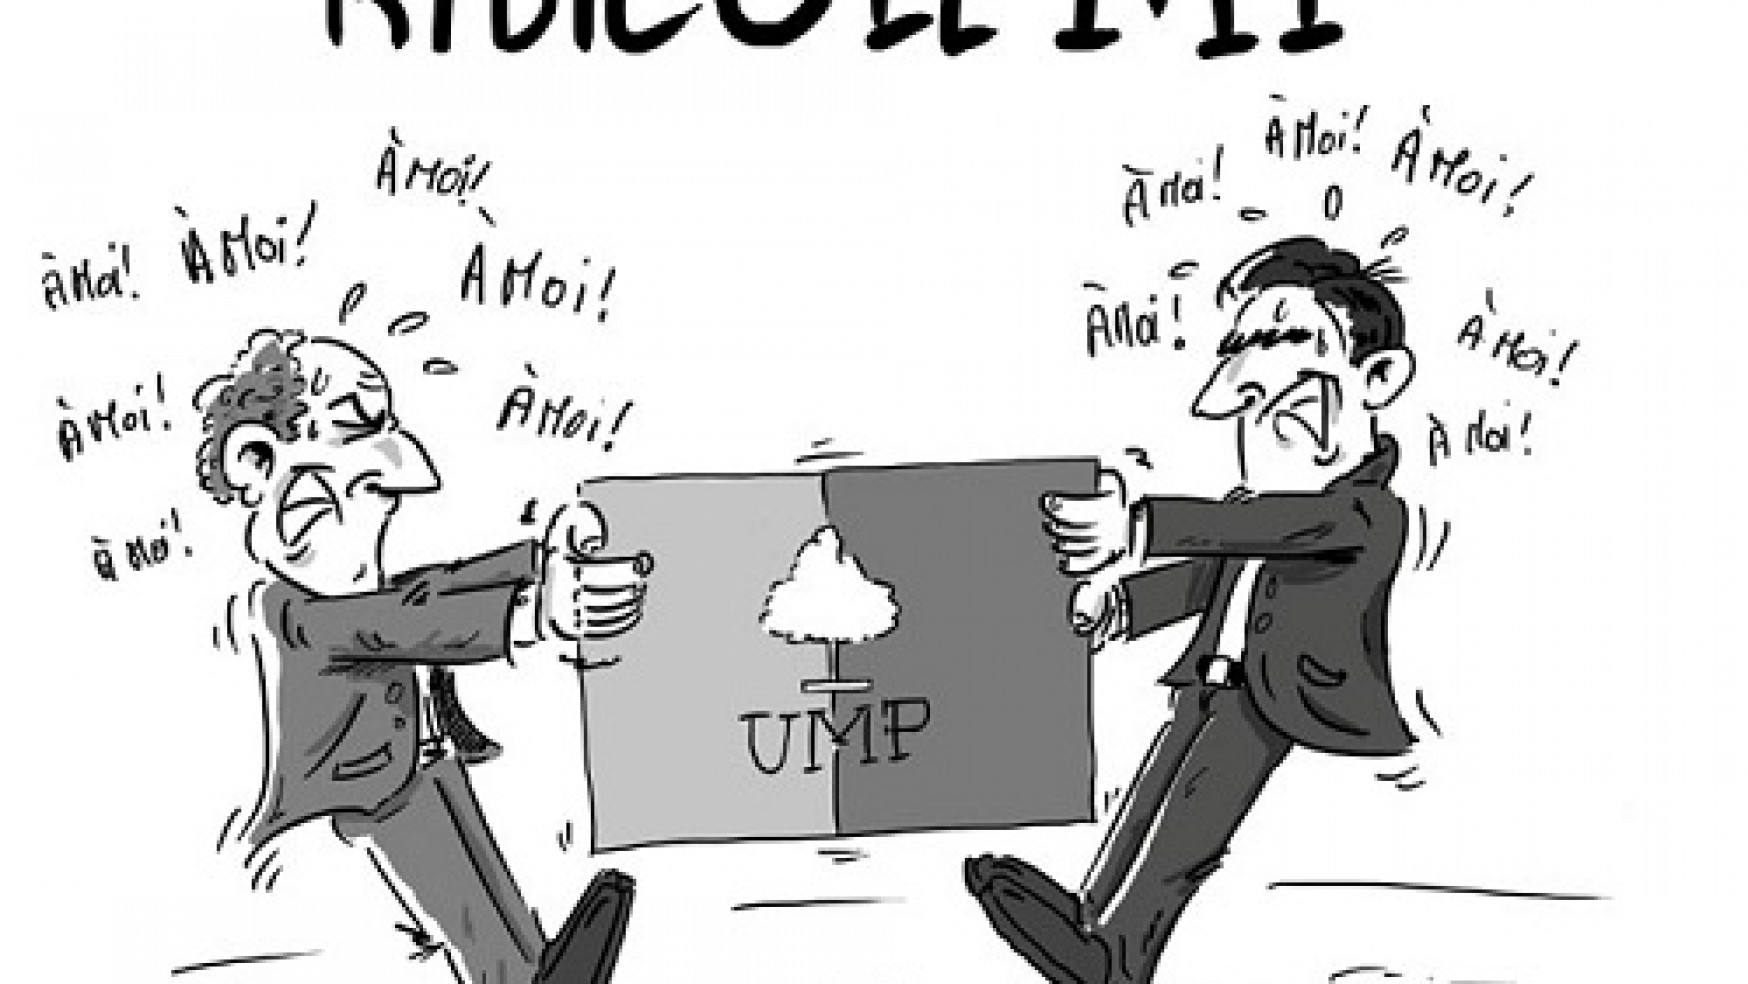 Ridicule'MP